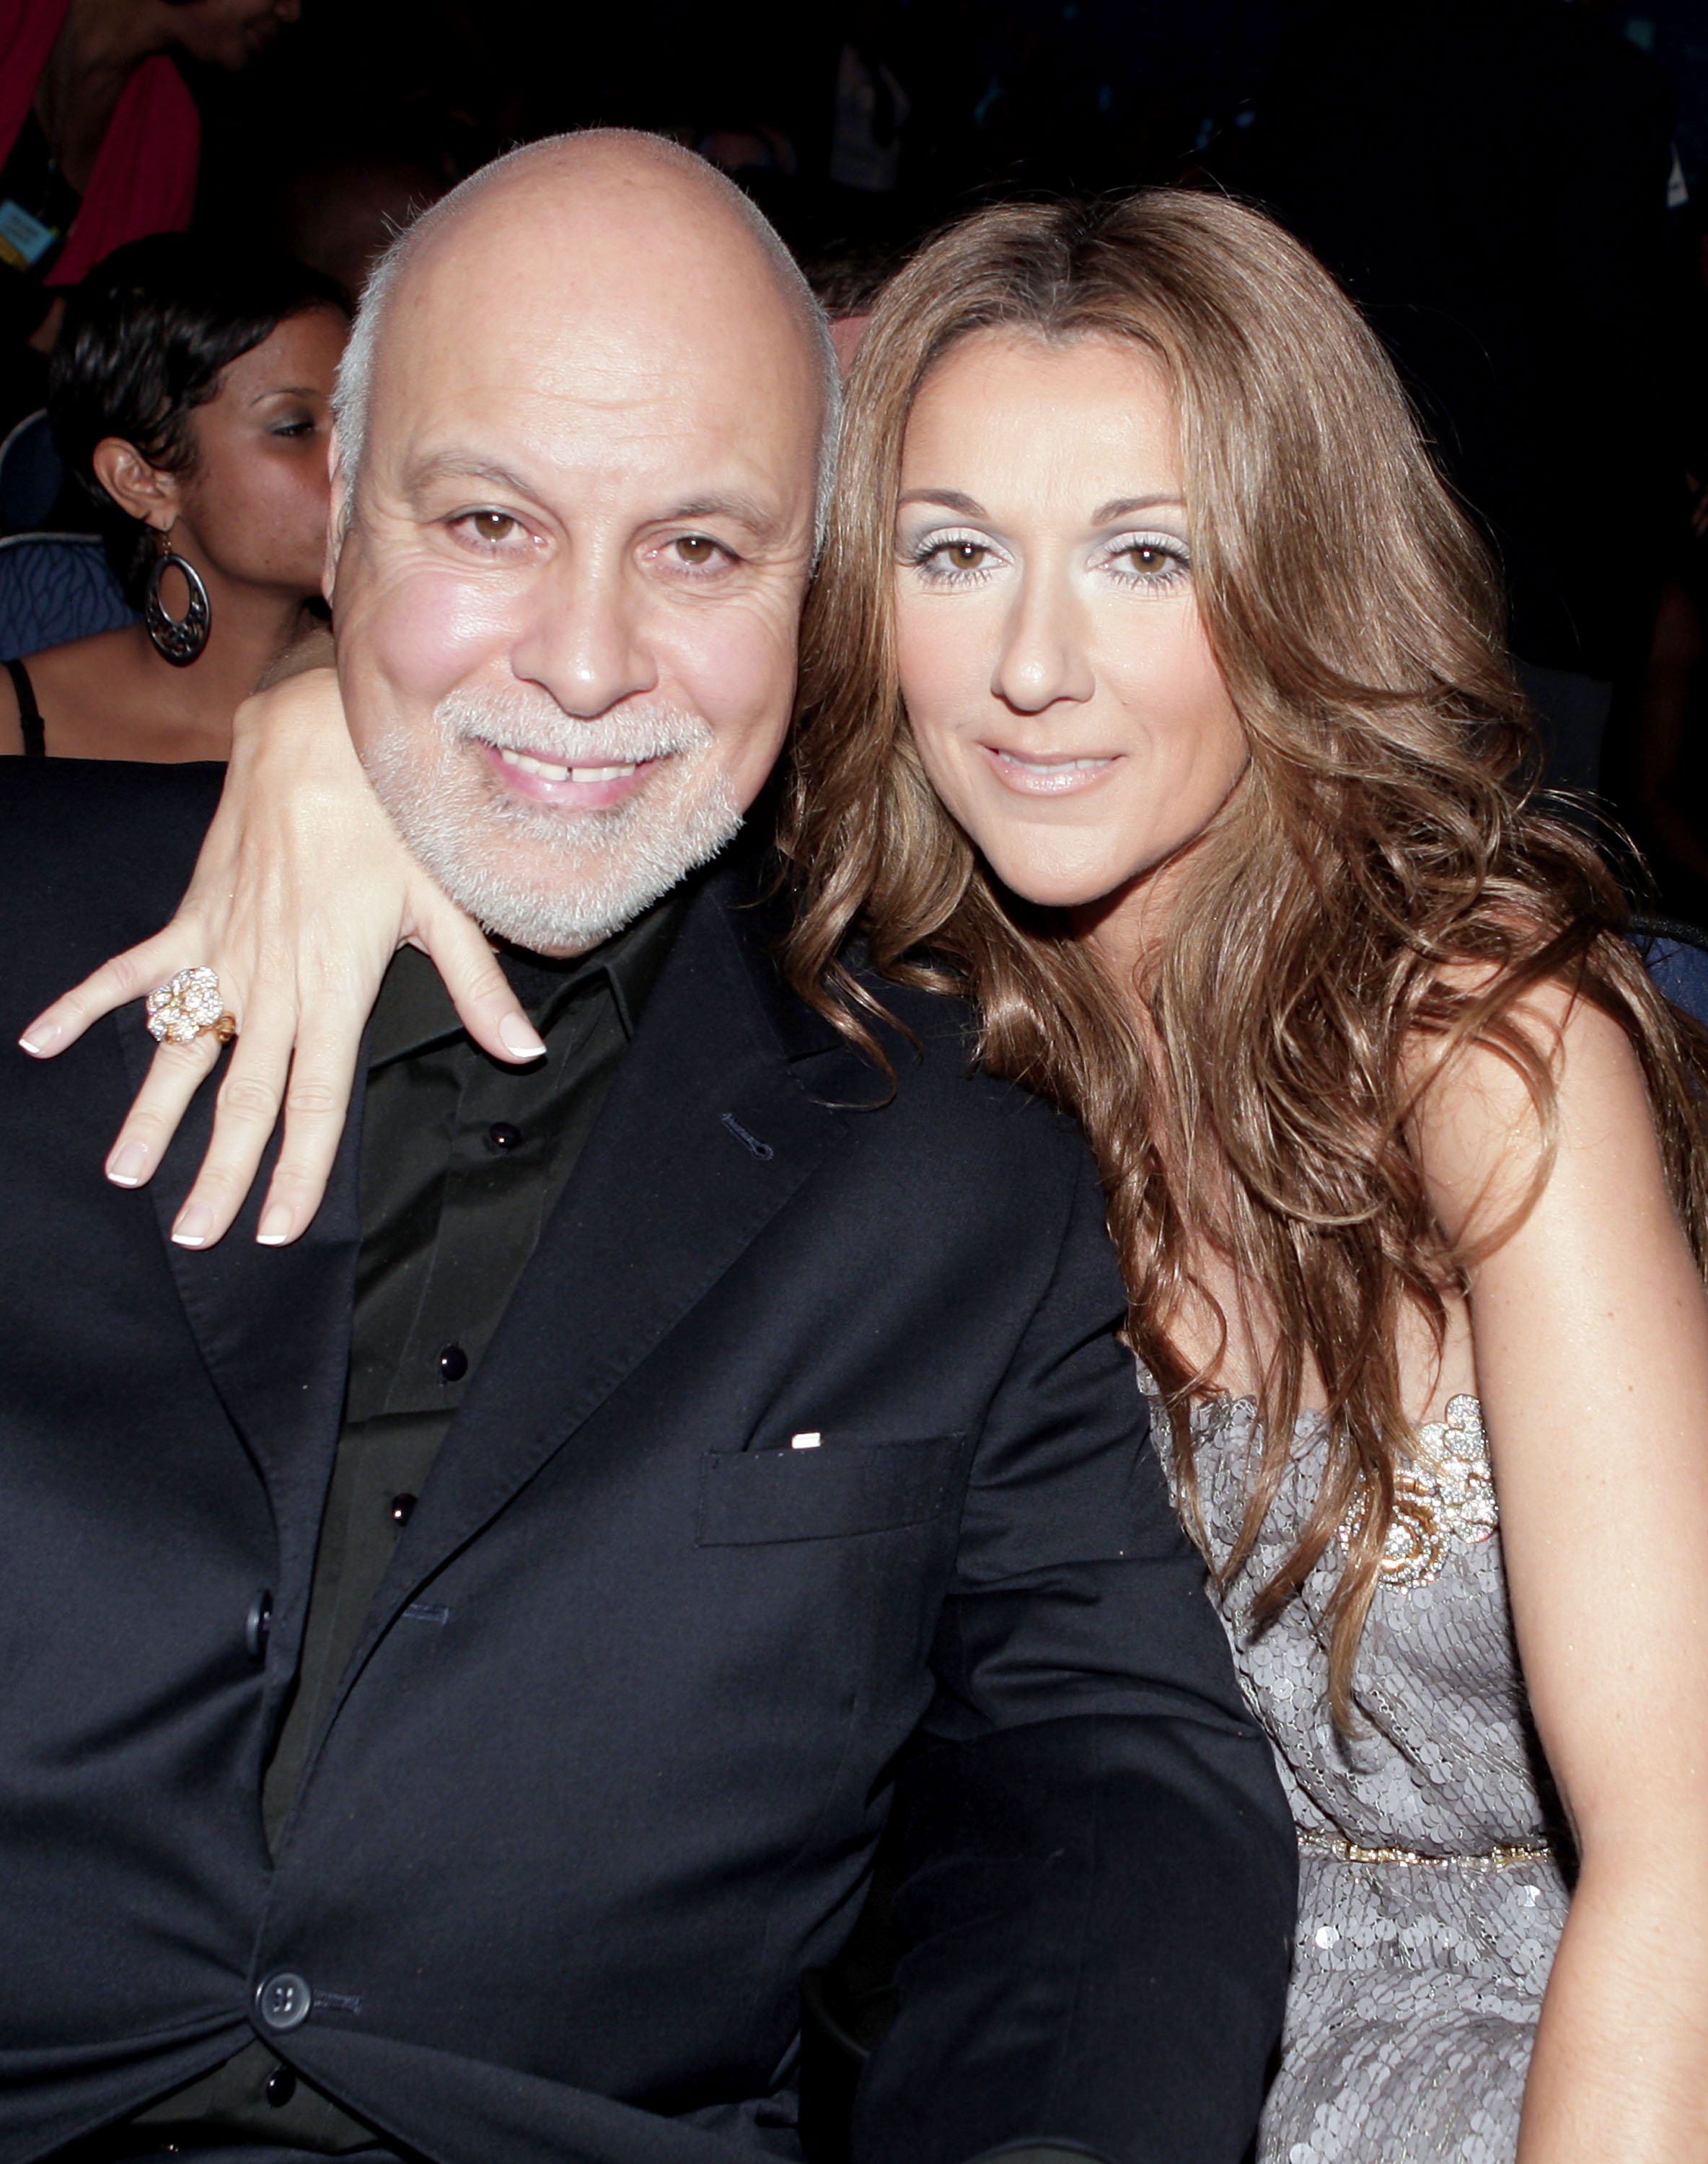 Rene Angelil and Singer Celine Dion in the audience during the 2007 American Music Awards held at the Nokia Theatre L.A. LIVE on November 18, 2007, in Los Angeles, California.   Source: Getty Images.